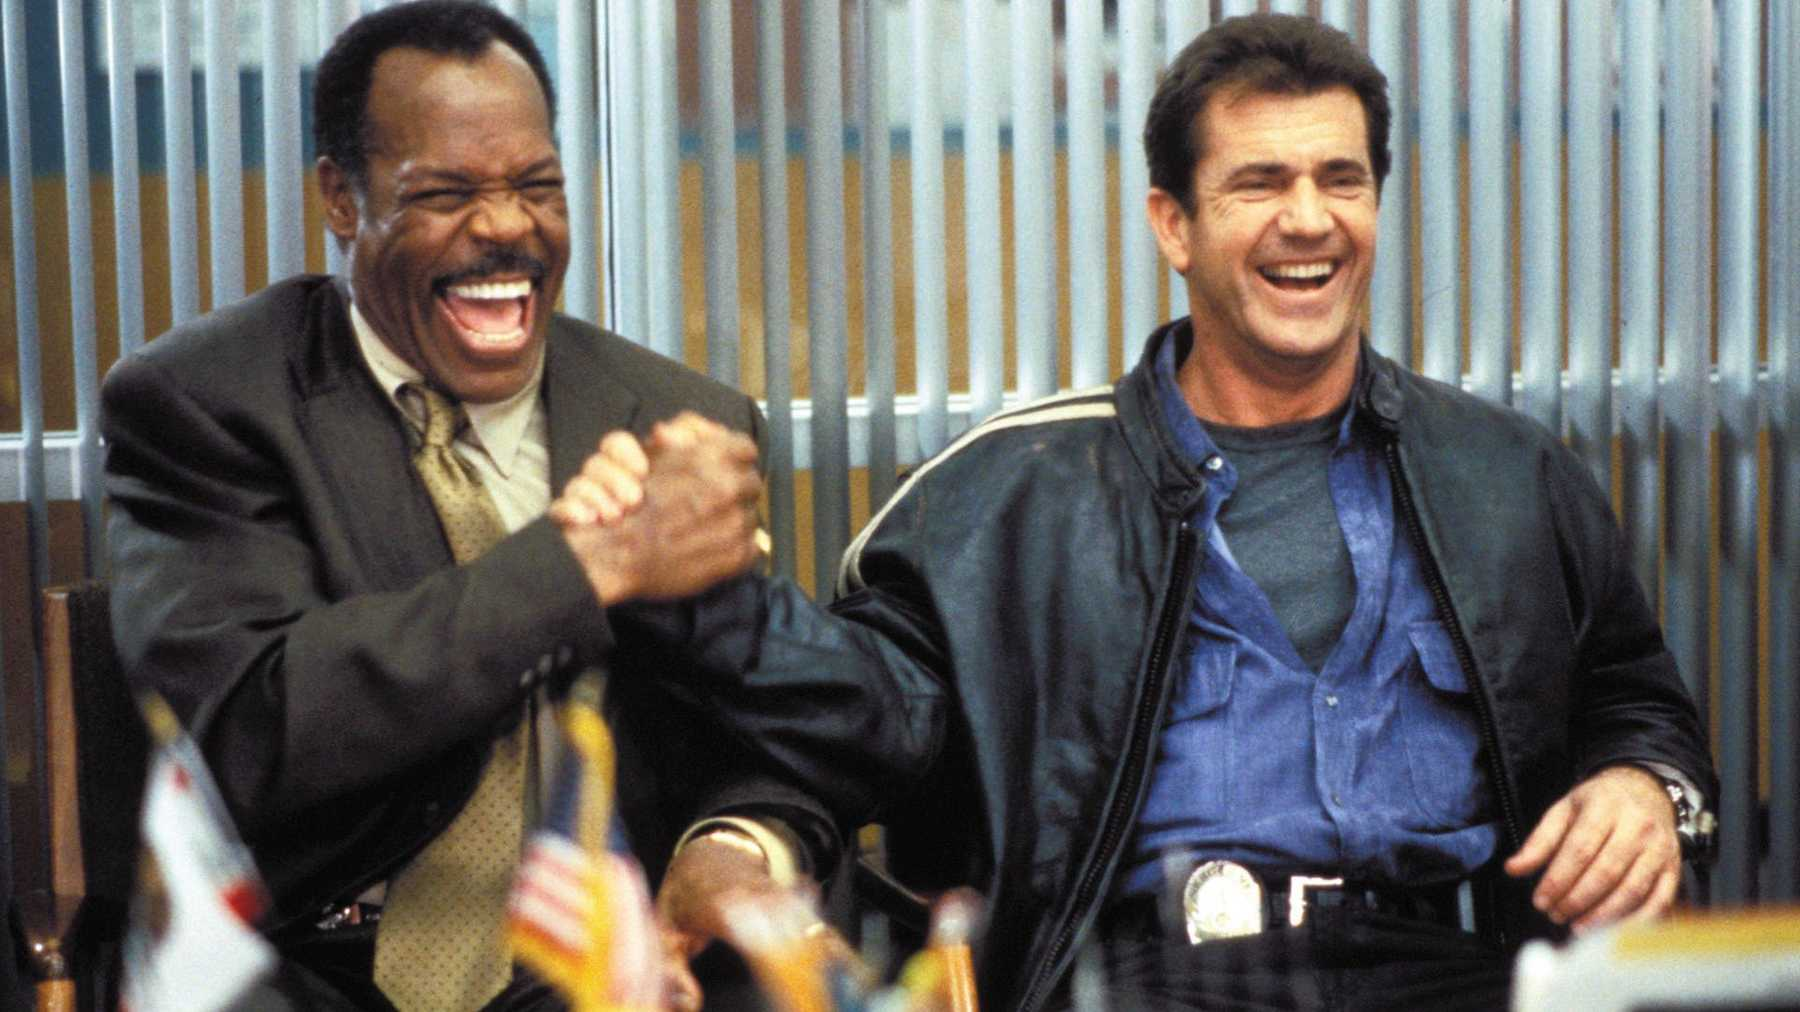 Lethal Weapon 5 Is Happening, Are They Too Old For This?